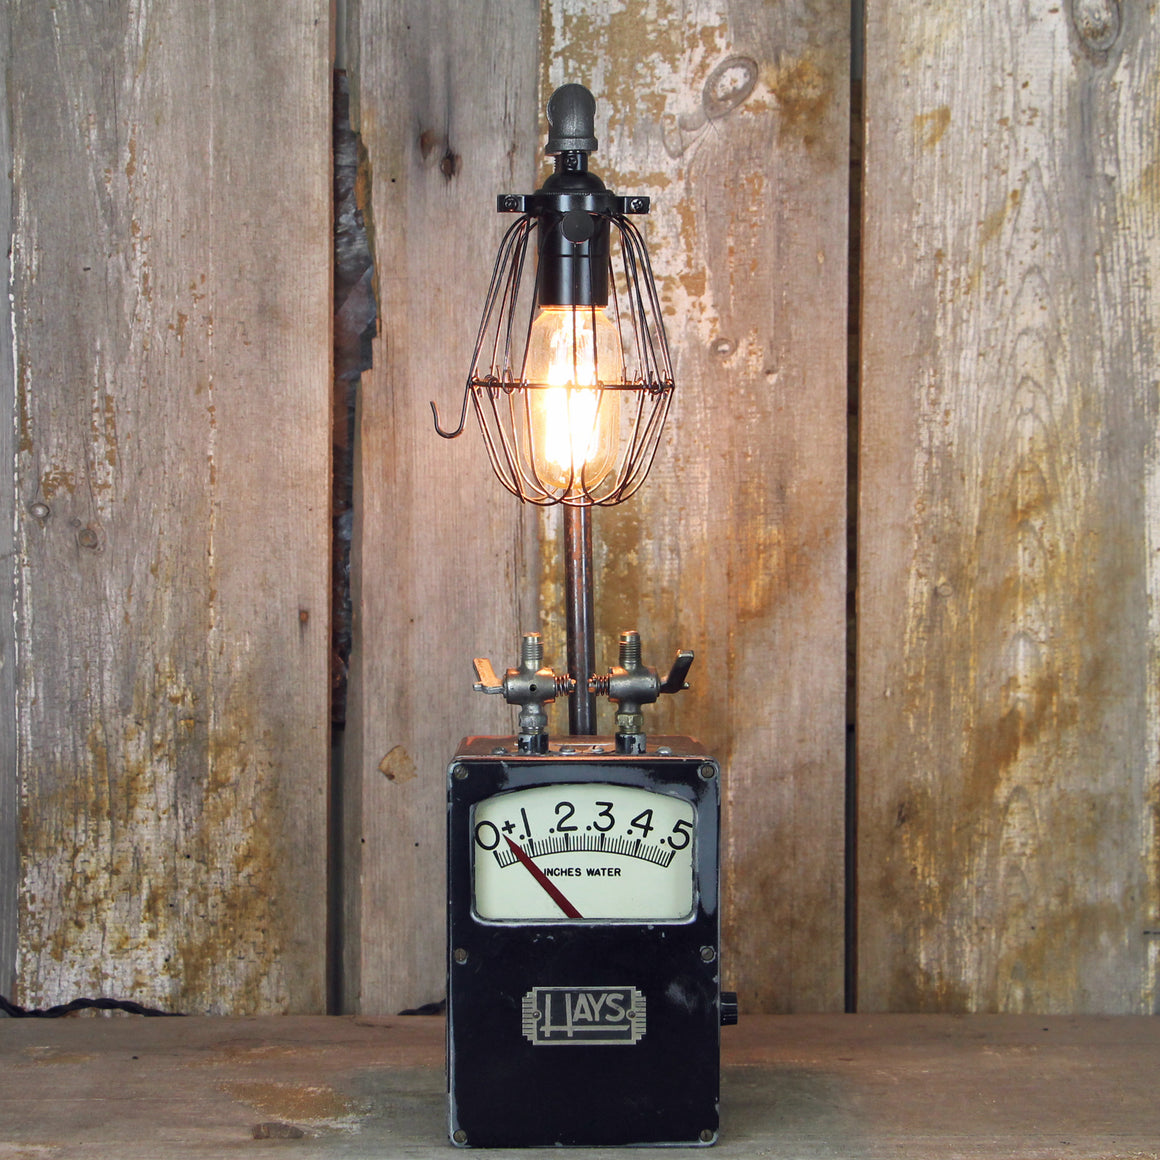 Steampunk Industrial Table Lamp with a Hays Meter Base #1912 - The Lighting Works